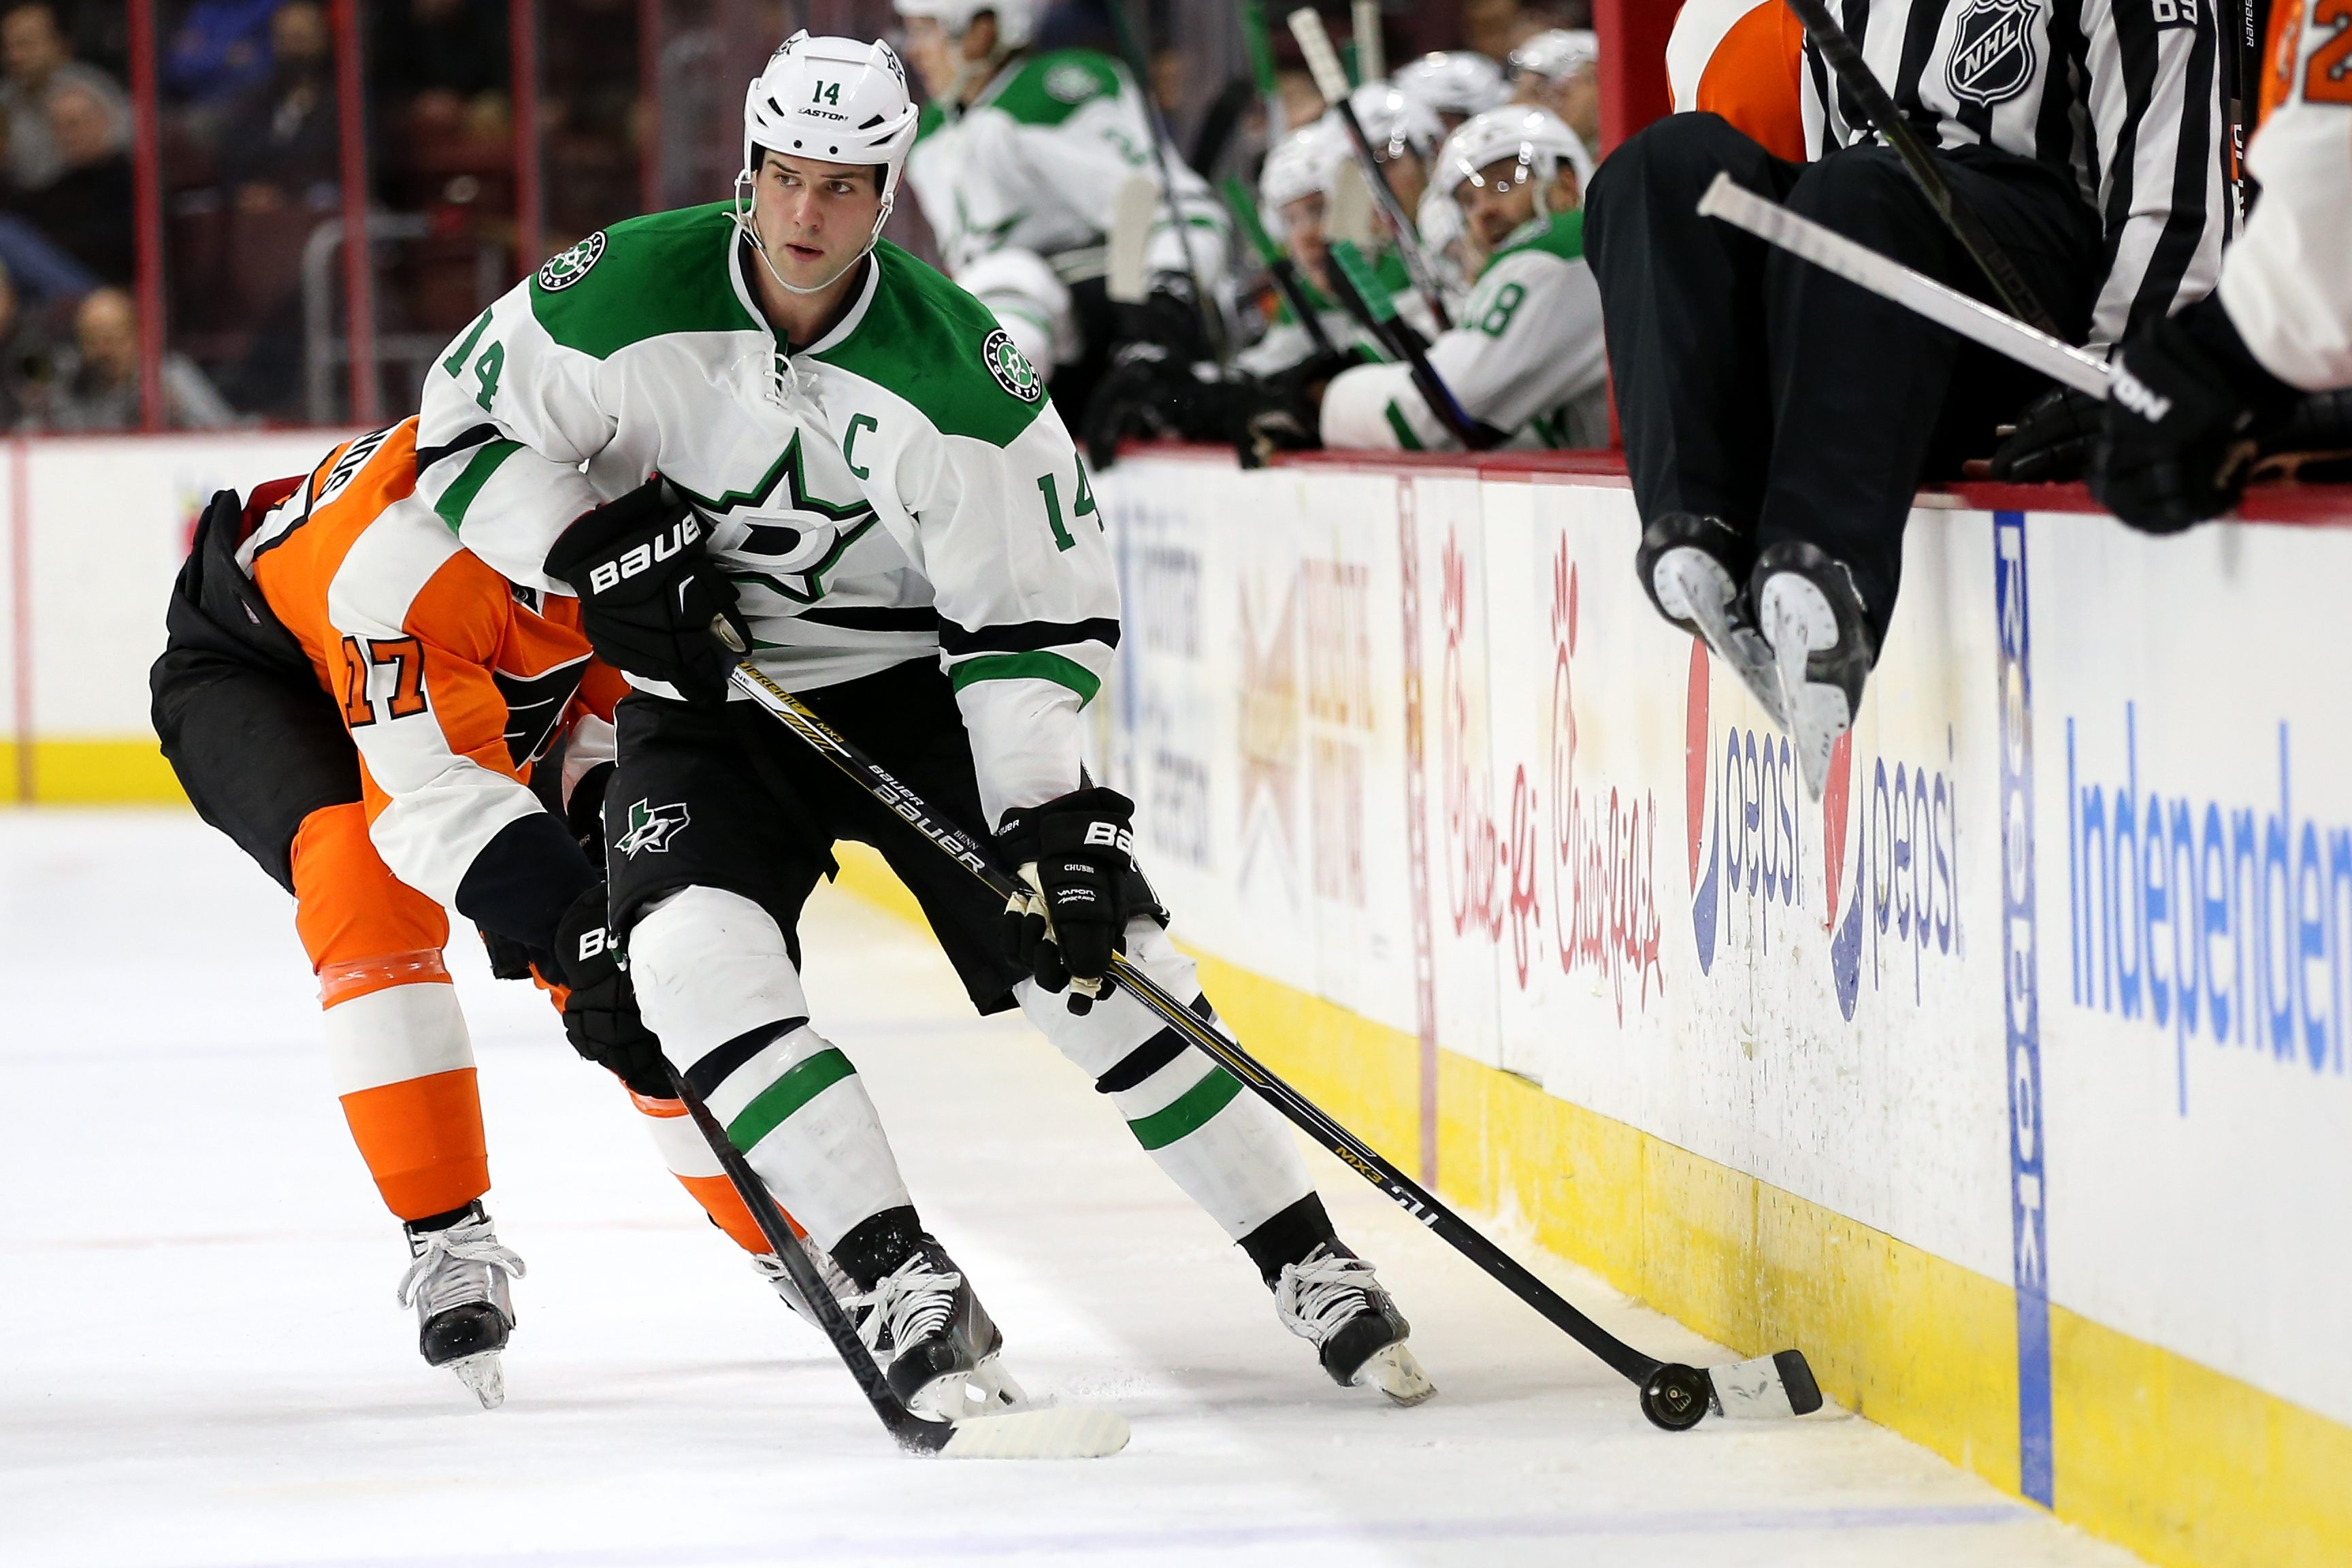 The Dallas Stars hit the jackpot when they drafted Jamie Benn, team captain and last year's NHL scoring leader, in the fifth round of the 2007 draft.